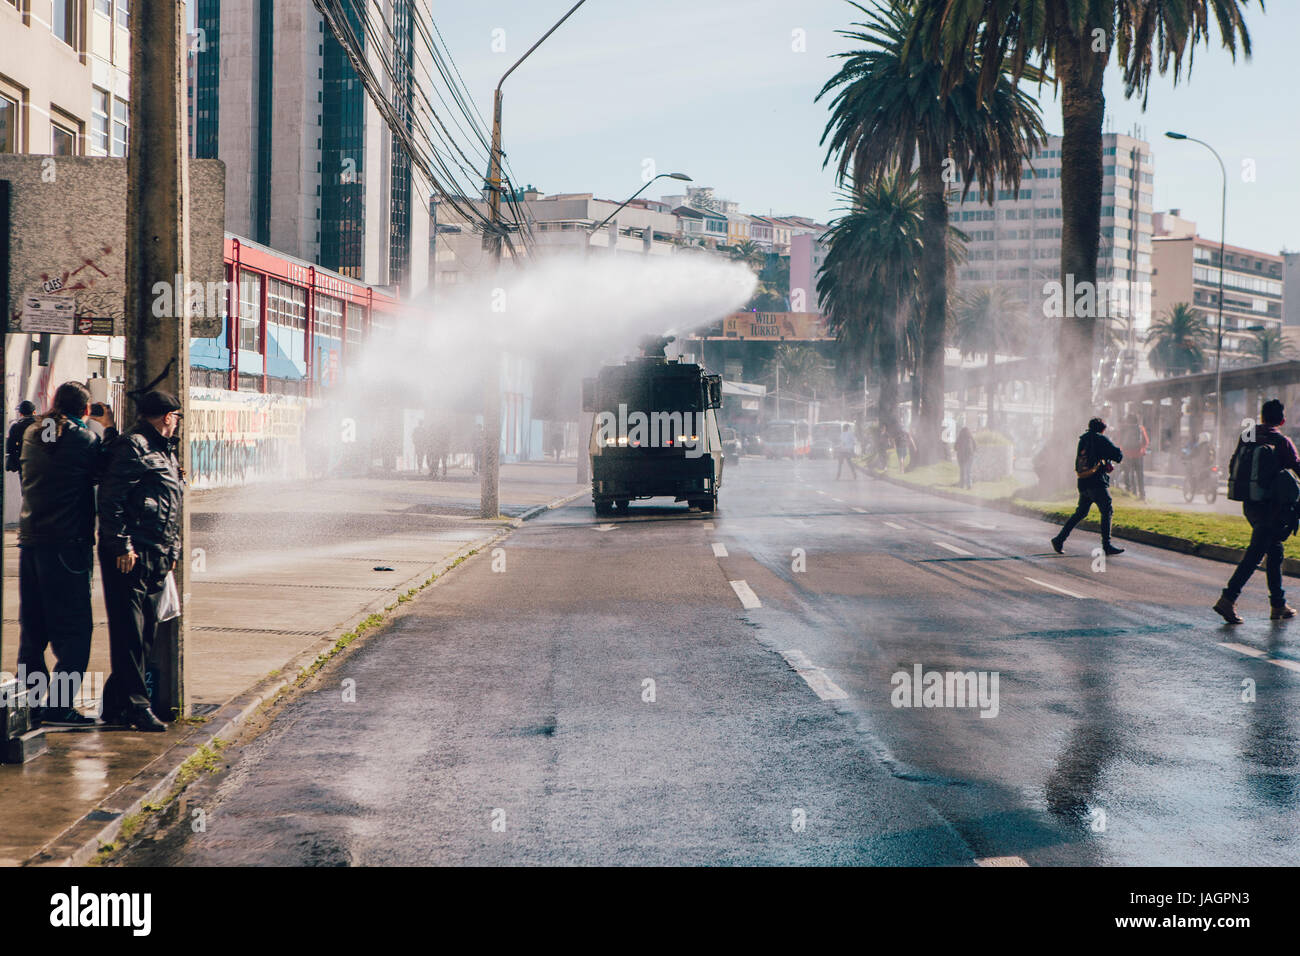 Valparaiso, Chile - June 01, 2017: Protests in Valparaiso, following President Michelle Bachelet's annual state - Stock Image